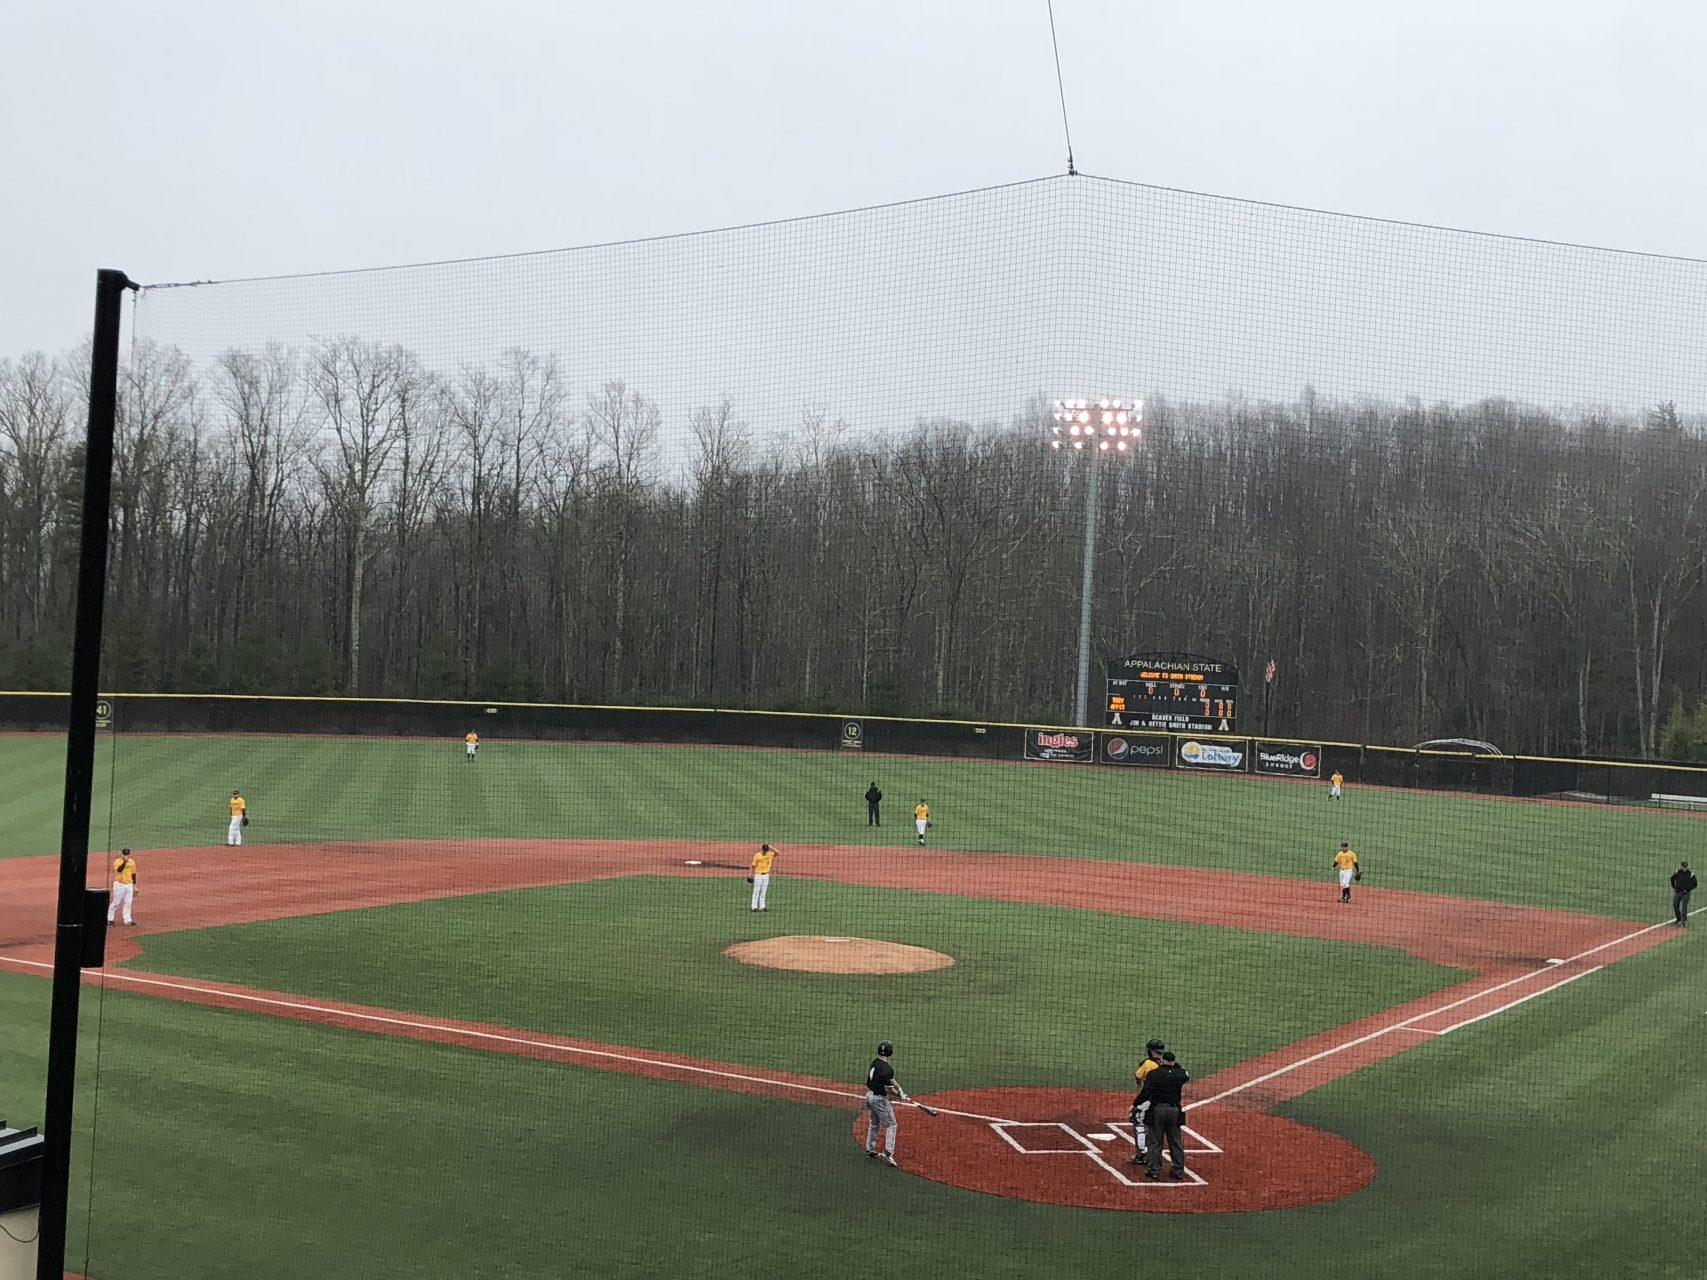 The Mountaineers defeated Georgia State 9-2 on Saturday to even the series 1-1. The tiebreaker will be played Sunday.